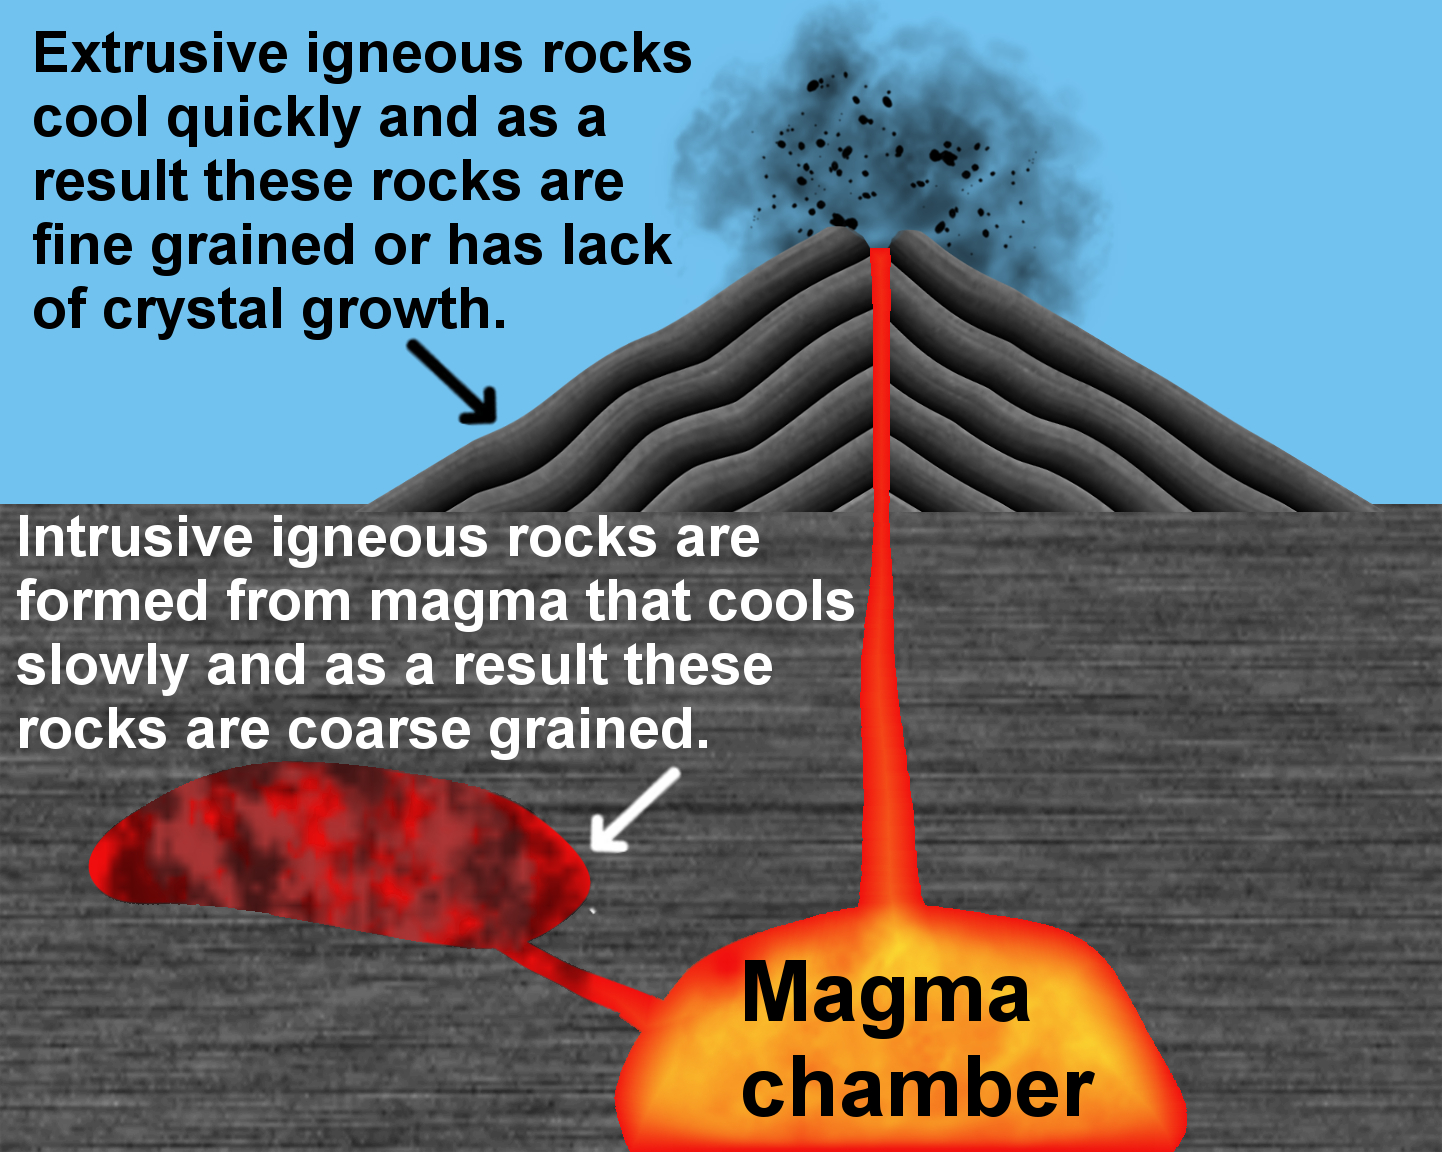 hight resolution of how are igneou rock formed diagram